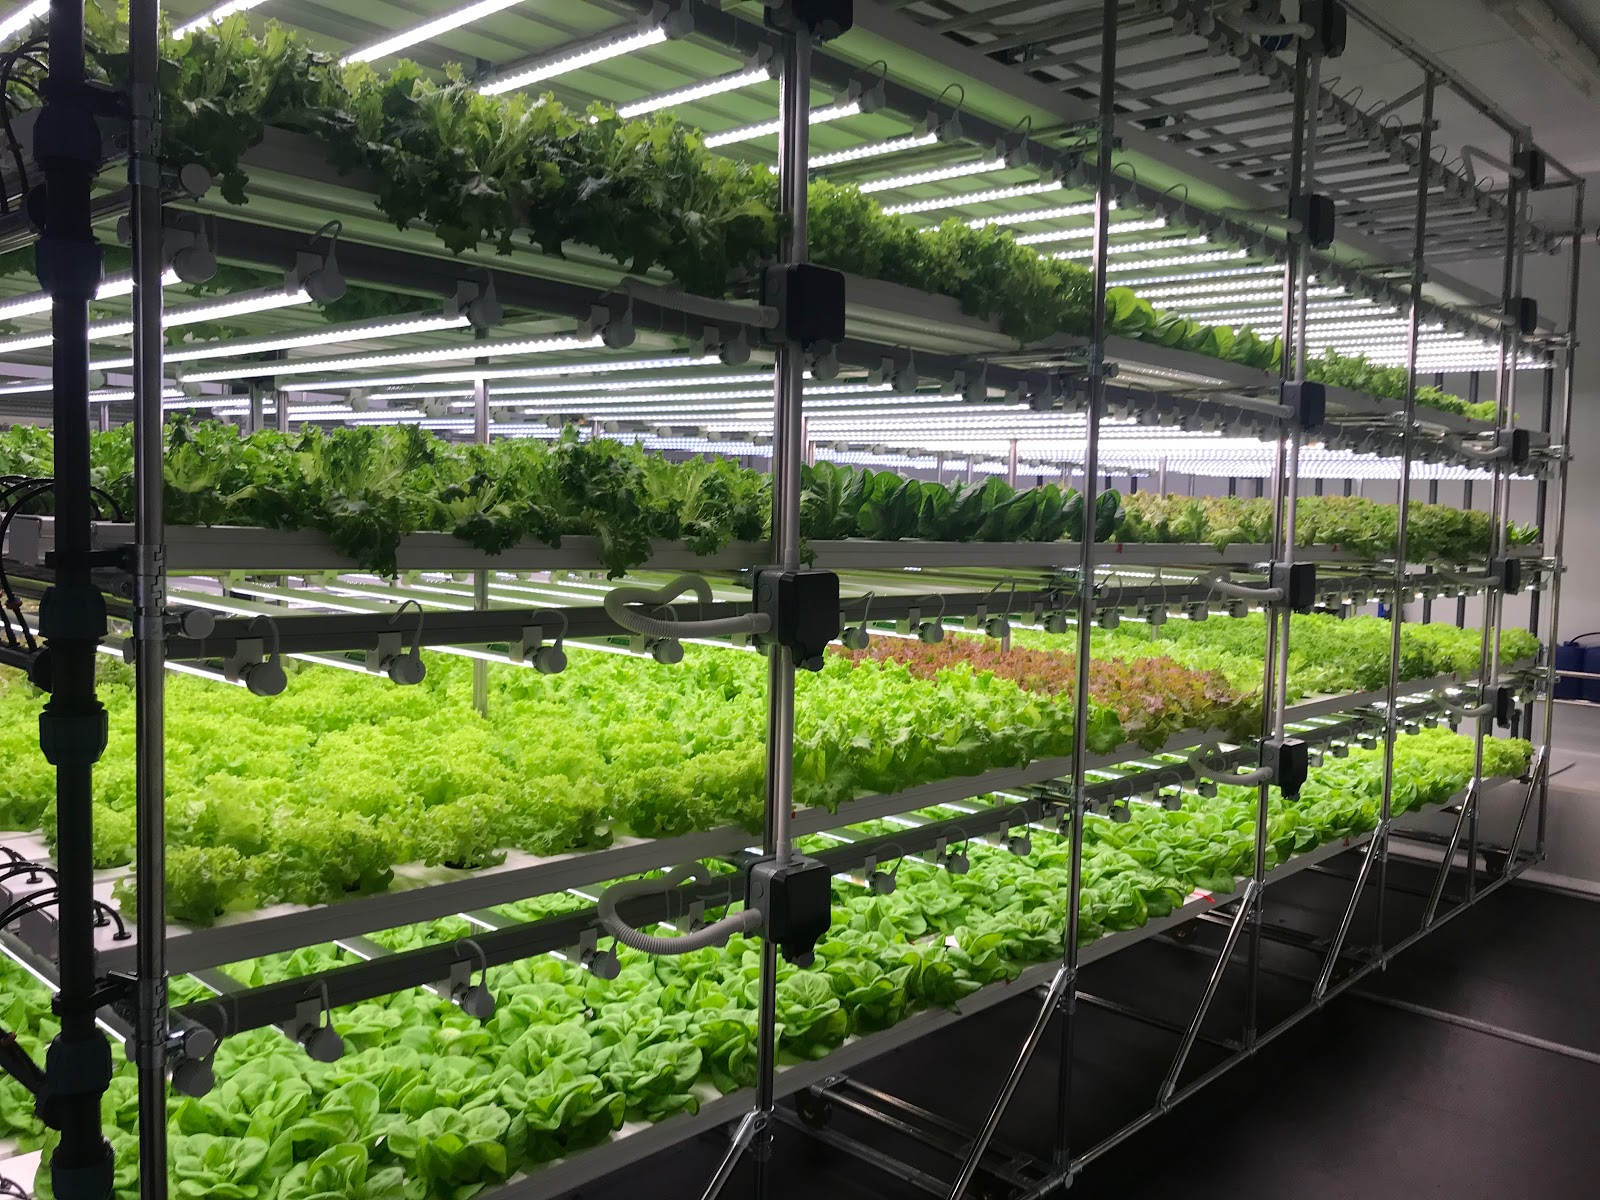 V-Farm , created by HydroGarden in the UK, is a modular vertical farming concept developed to fit within a room's available space.